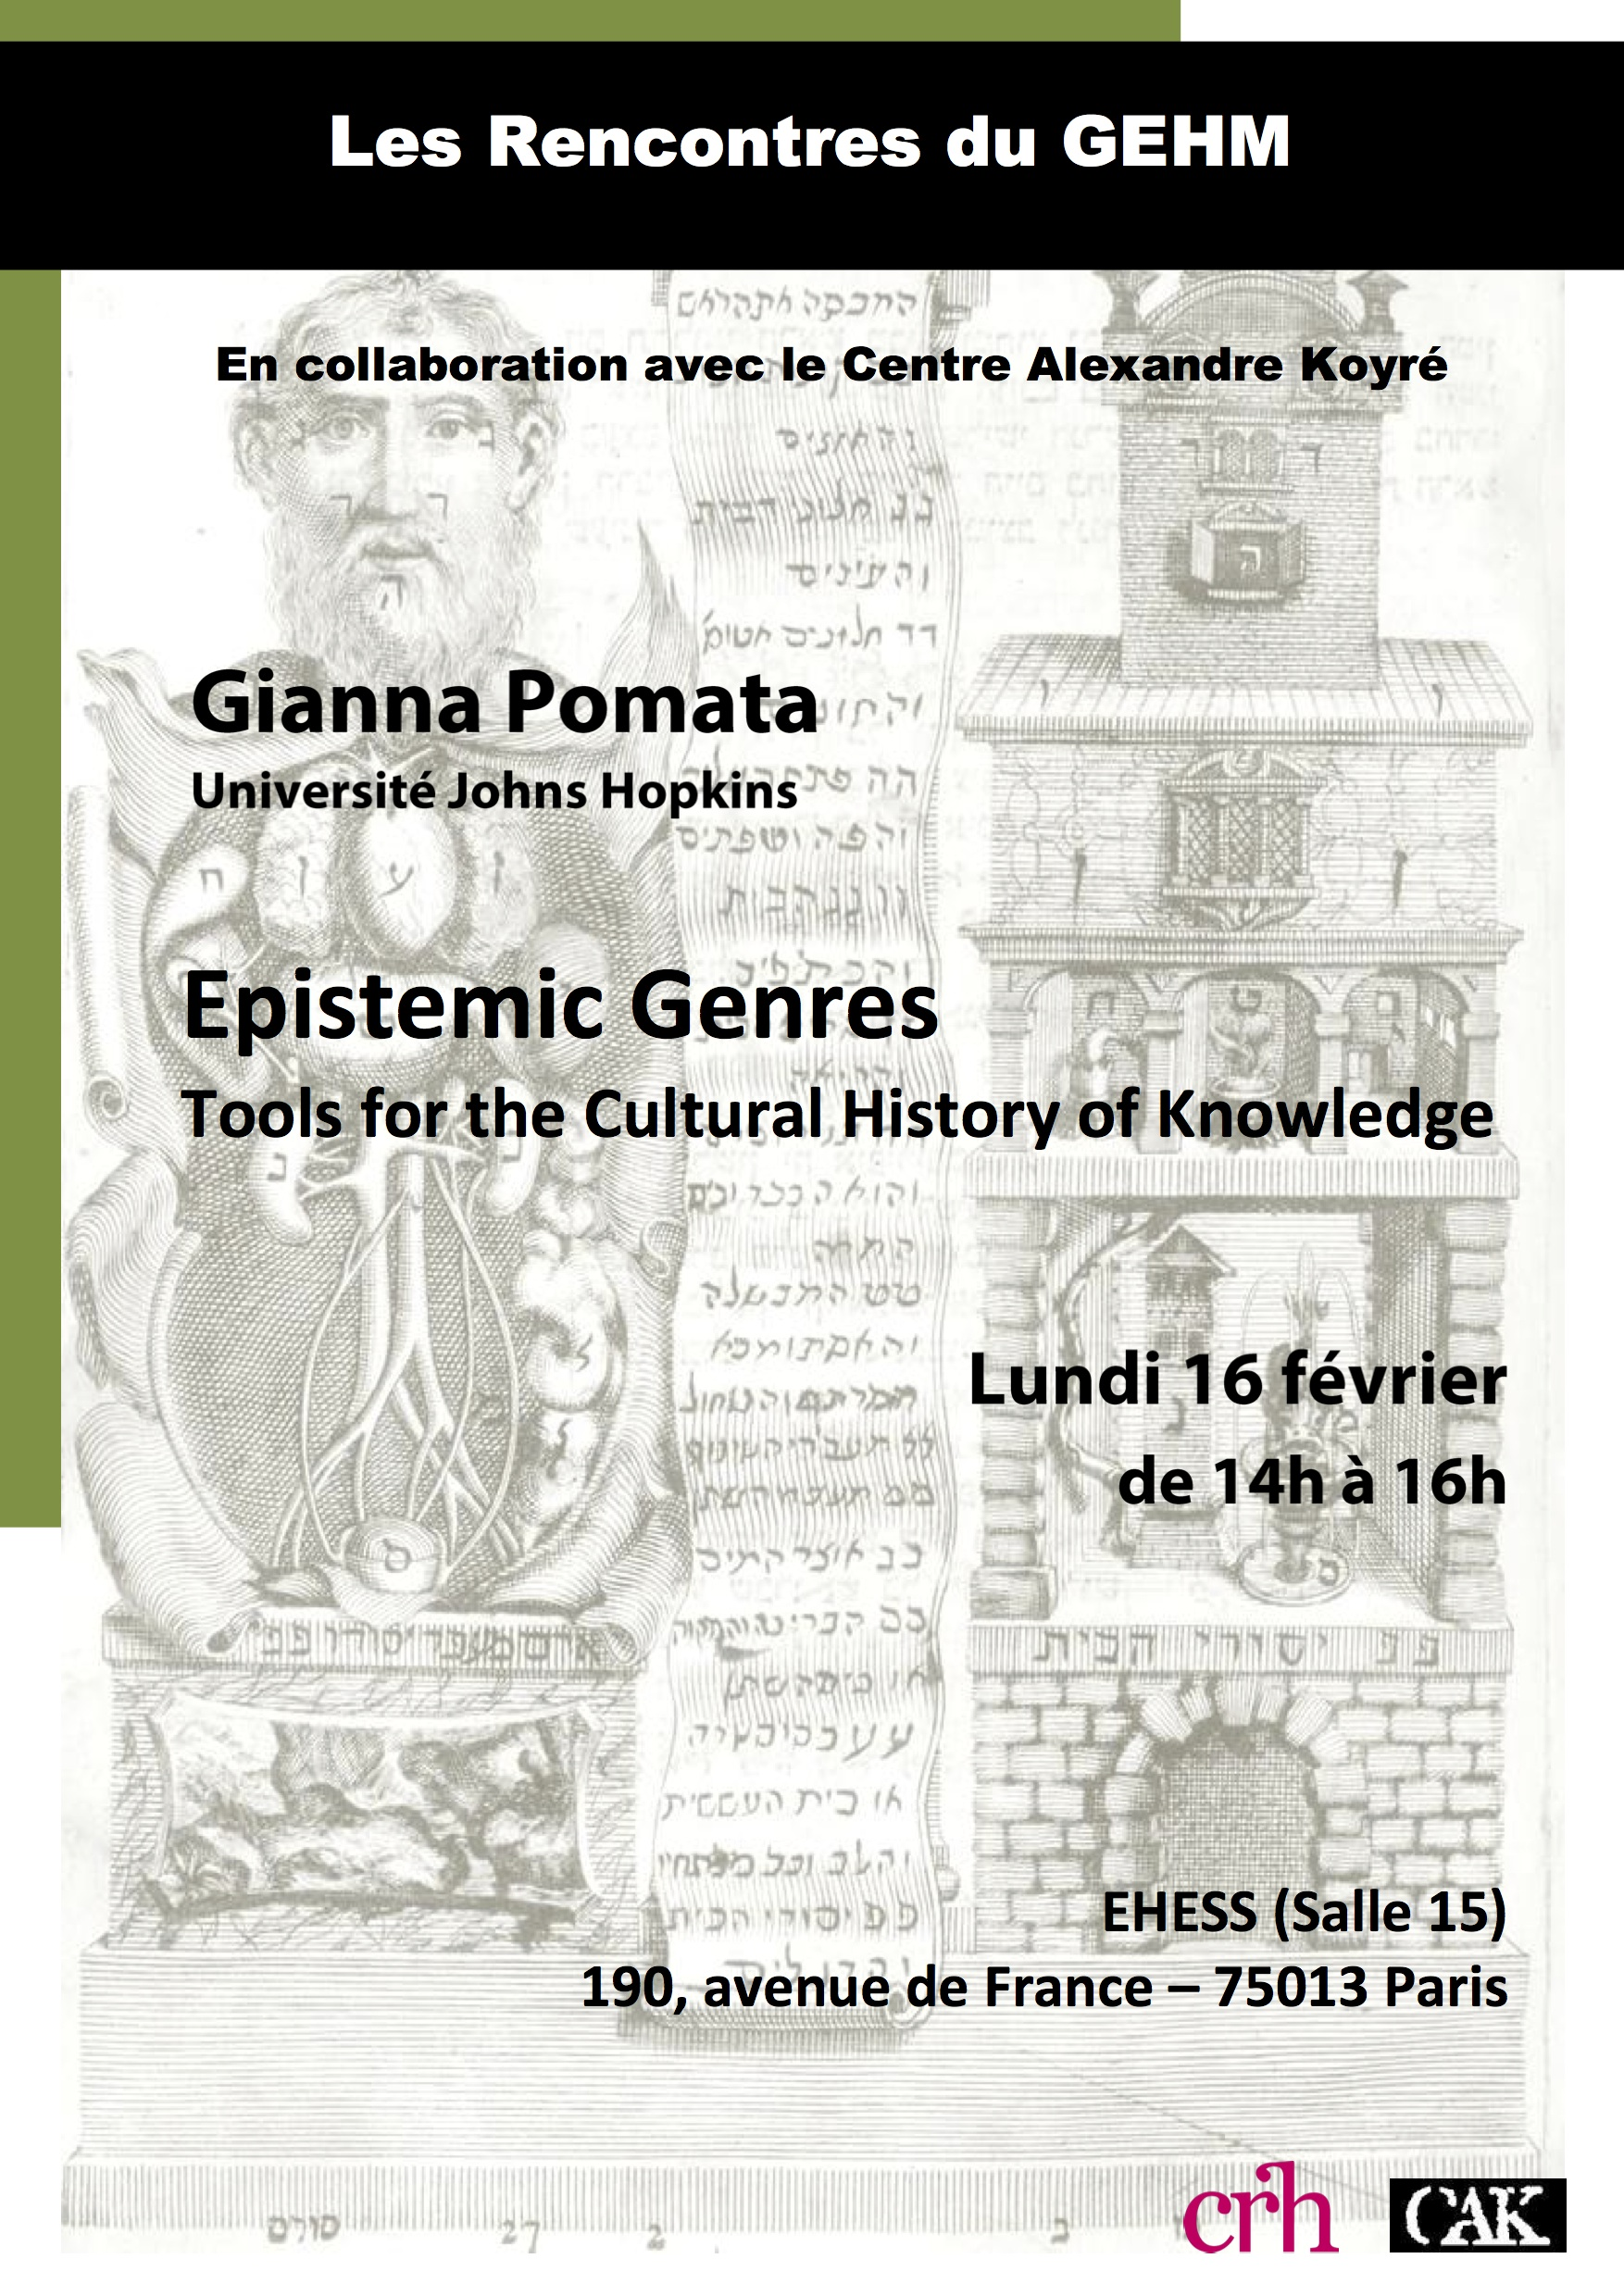 Conférence de Gianna Pomata : Epistemic Genres. Tools for the Cultural History of Knowledge (Les Rencontres du GEHM)